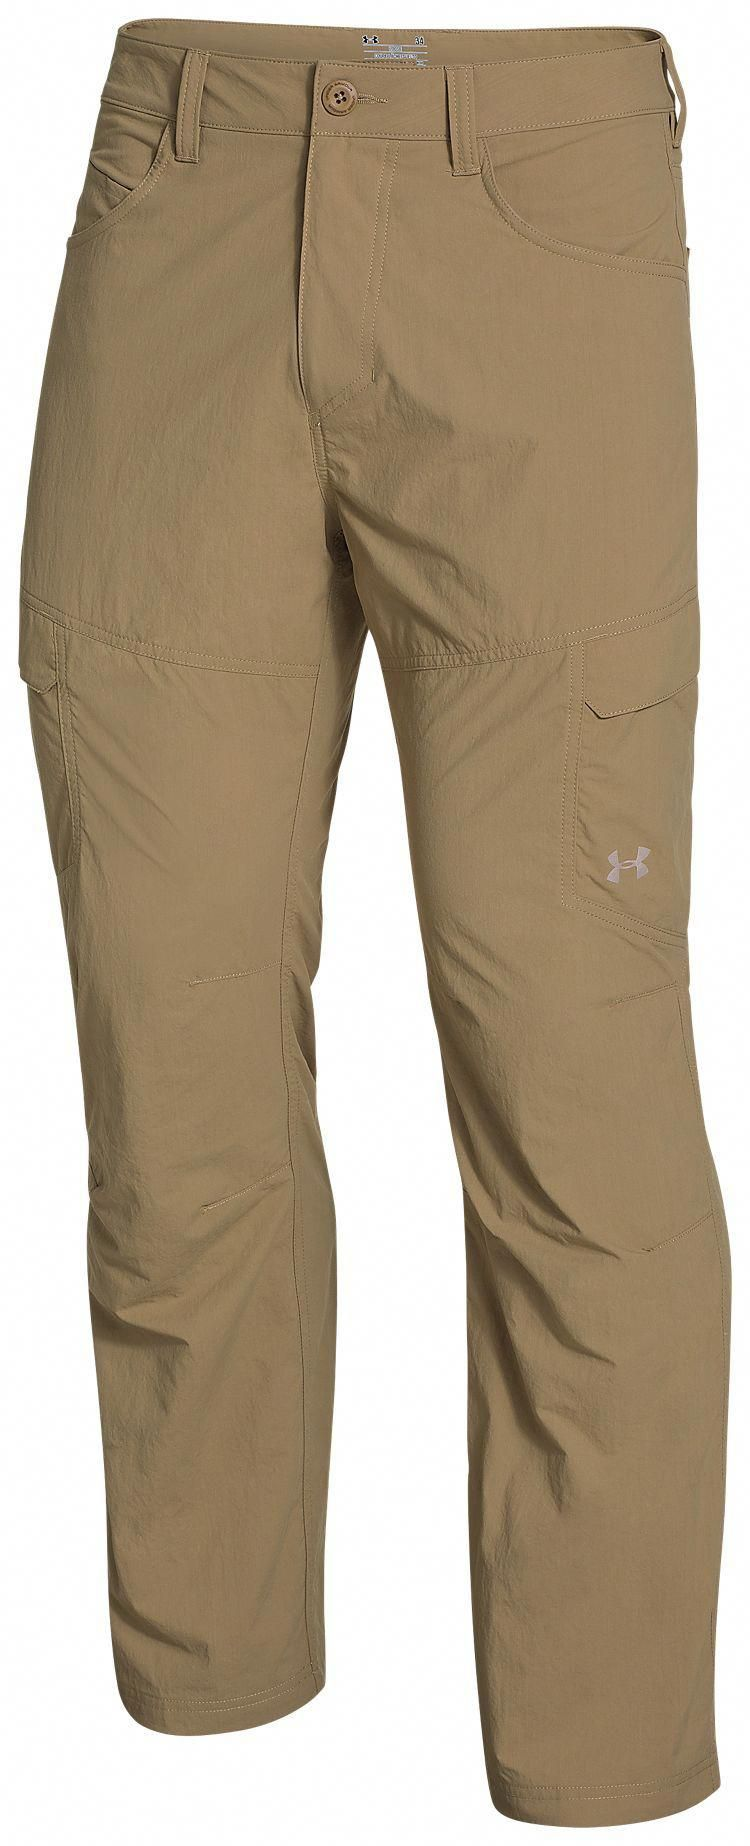 Under Armour Storm Covert Tactical Pants Mens Full Cut Field Duty Work 1262480